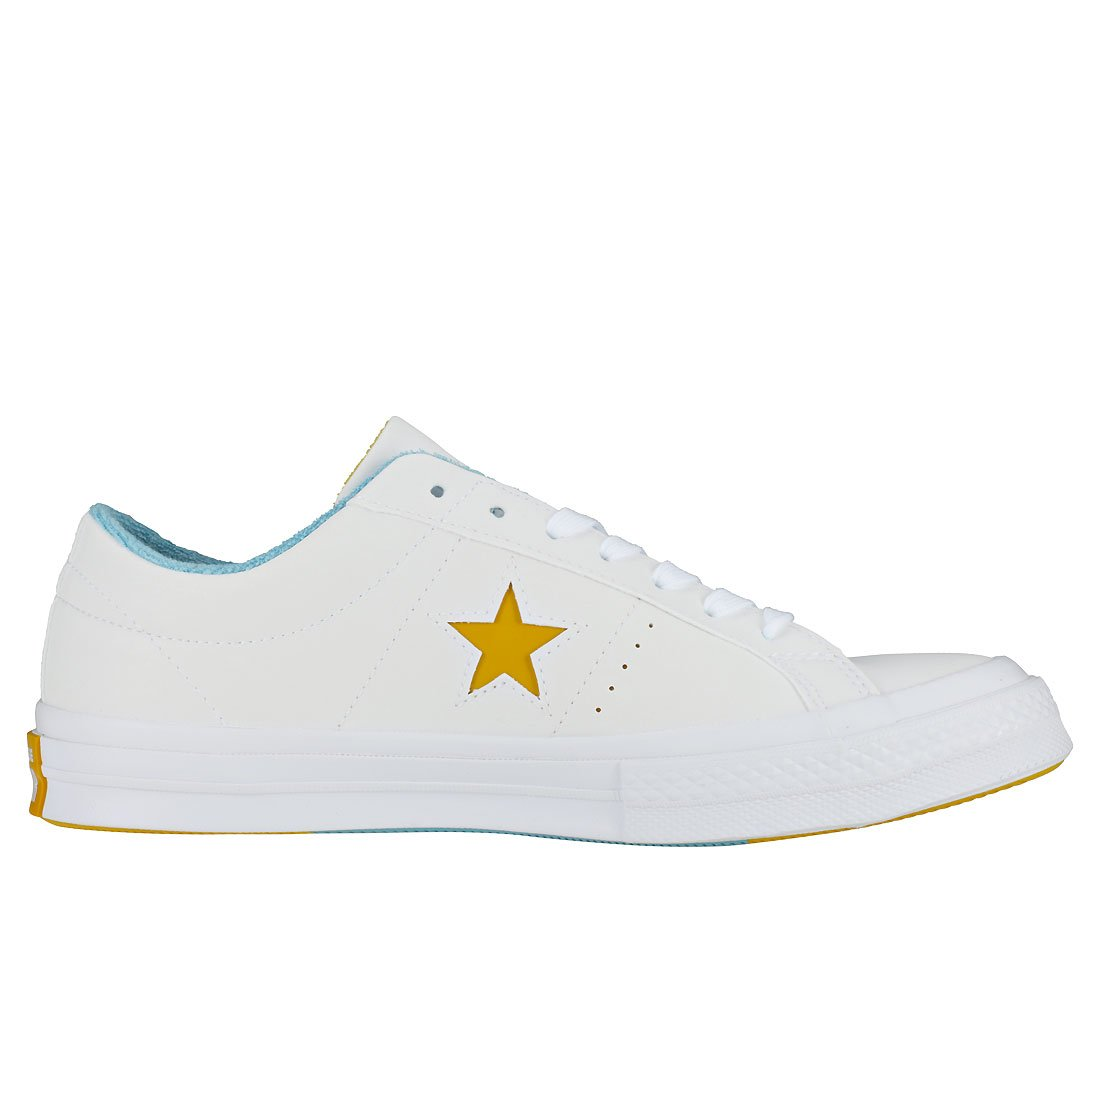 7429f6b9b7fa9b Converse One Star Ox Mens Trainers  Amazon.co.uk  Shoes   Bags